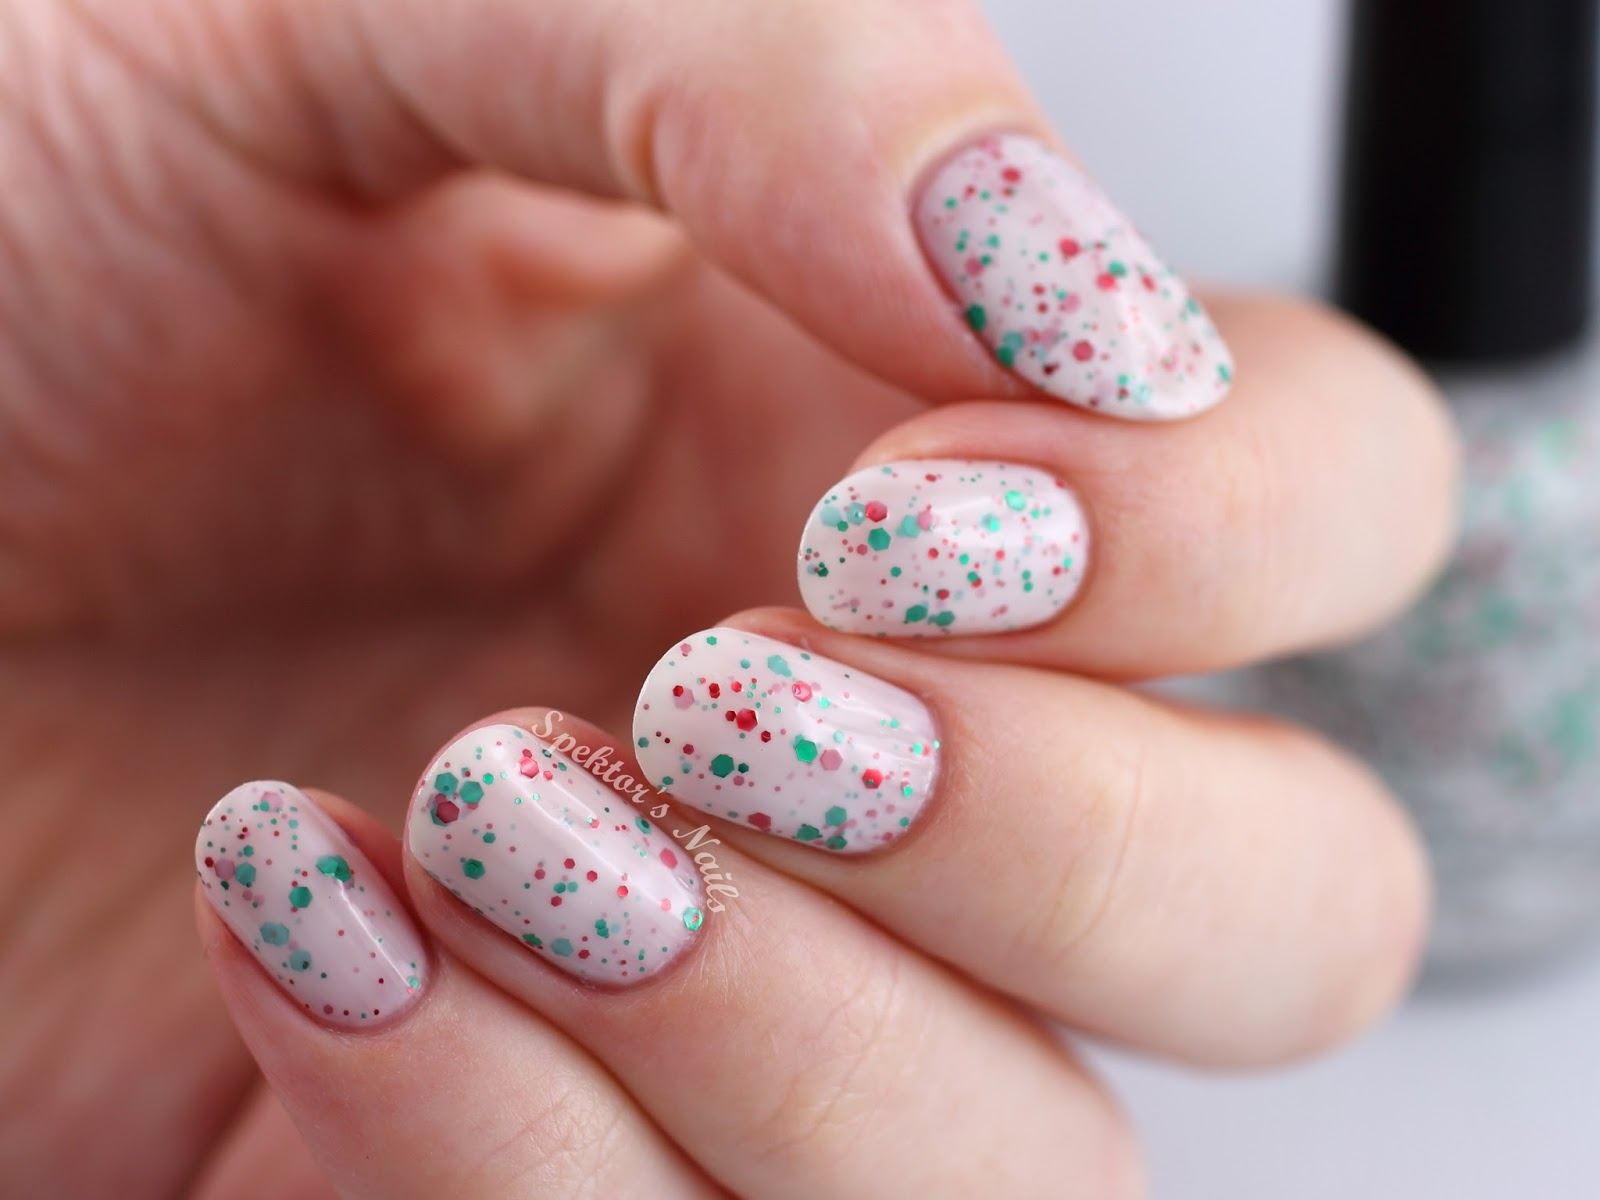 KBShimmer - Holly Back Girl (Winter Collection 2014)